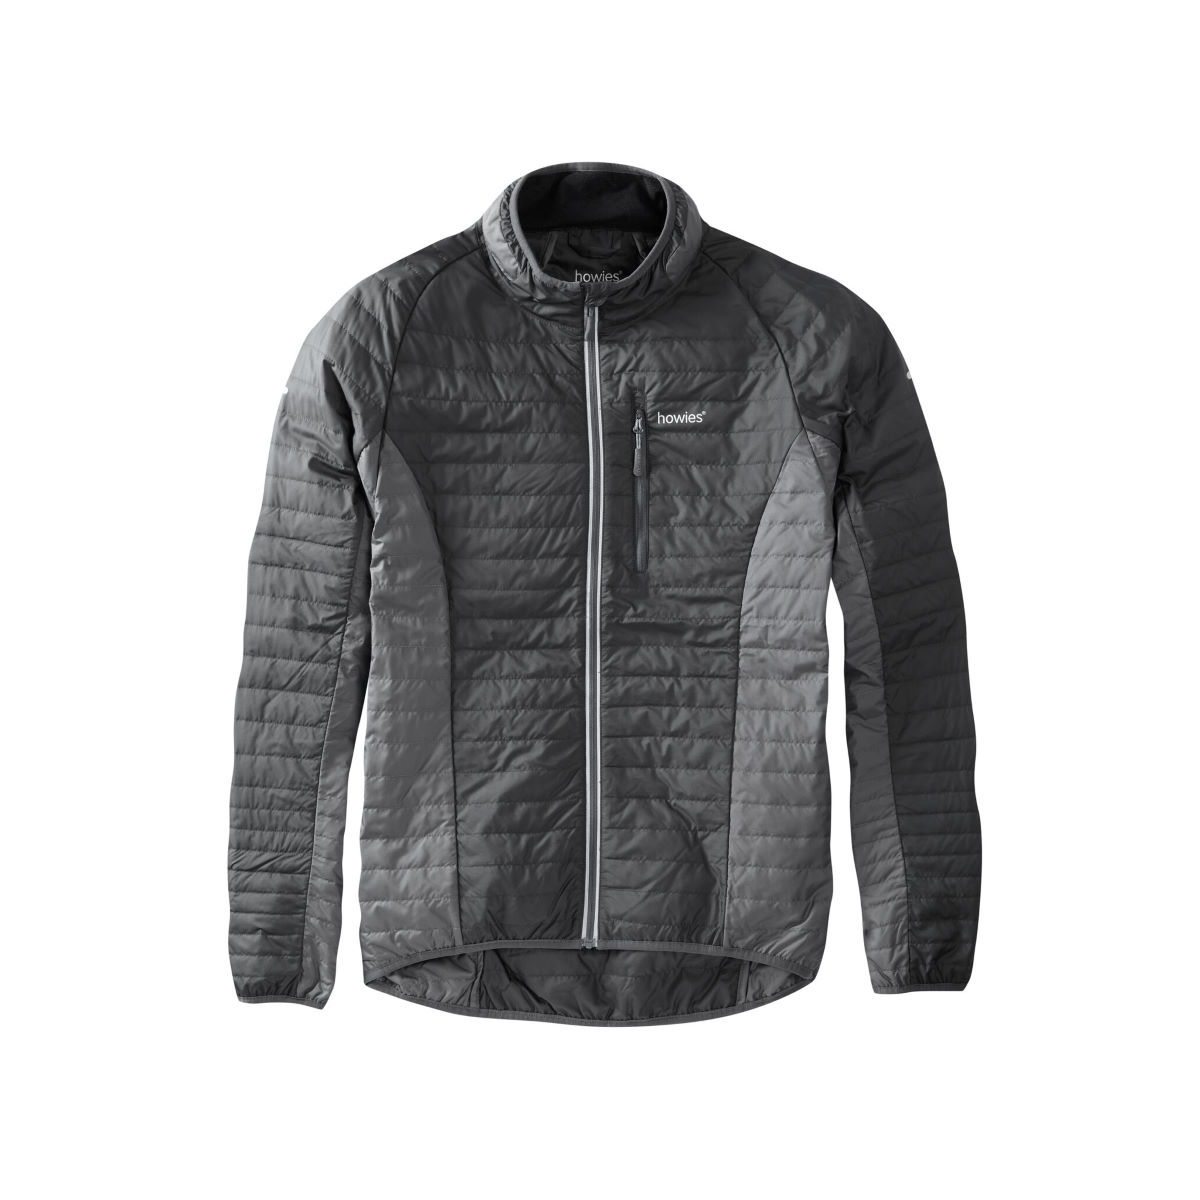 Veste howies Bryant Wadded (polyester recyclé) - M Pirate Black